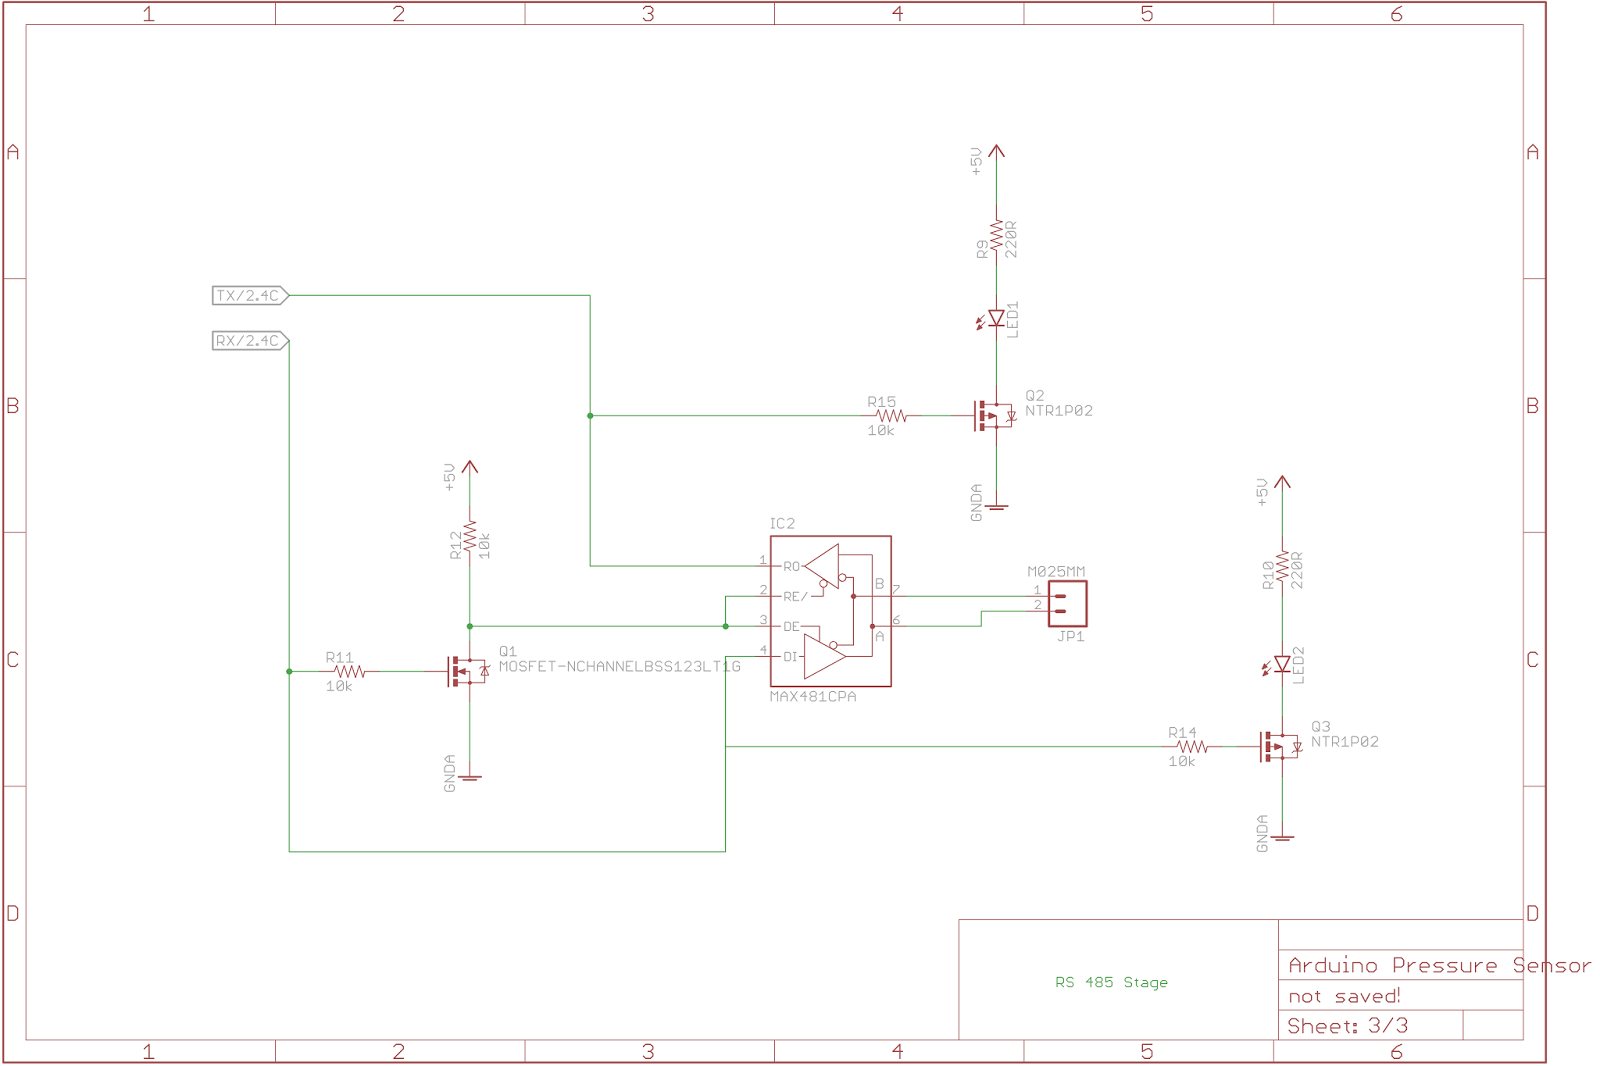 medium resolution of  of the circuit i haven t discussed rs485 before but it is a fairly common serial communications protocol here is the full schematic diagram